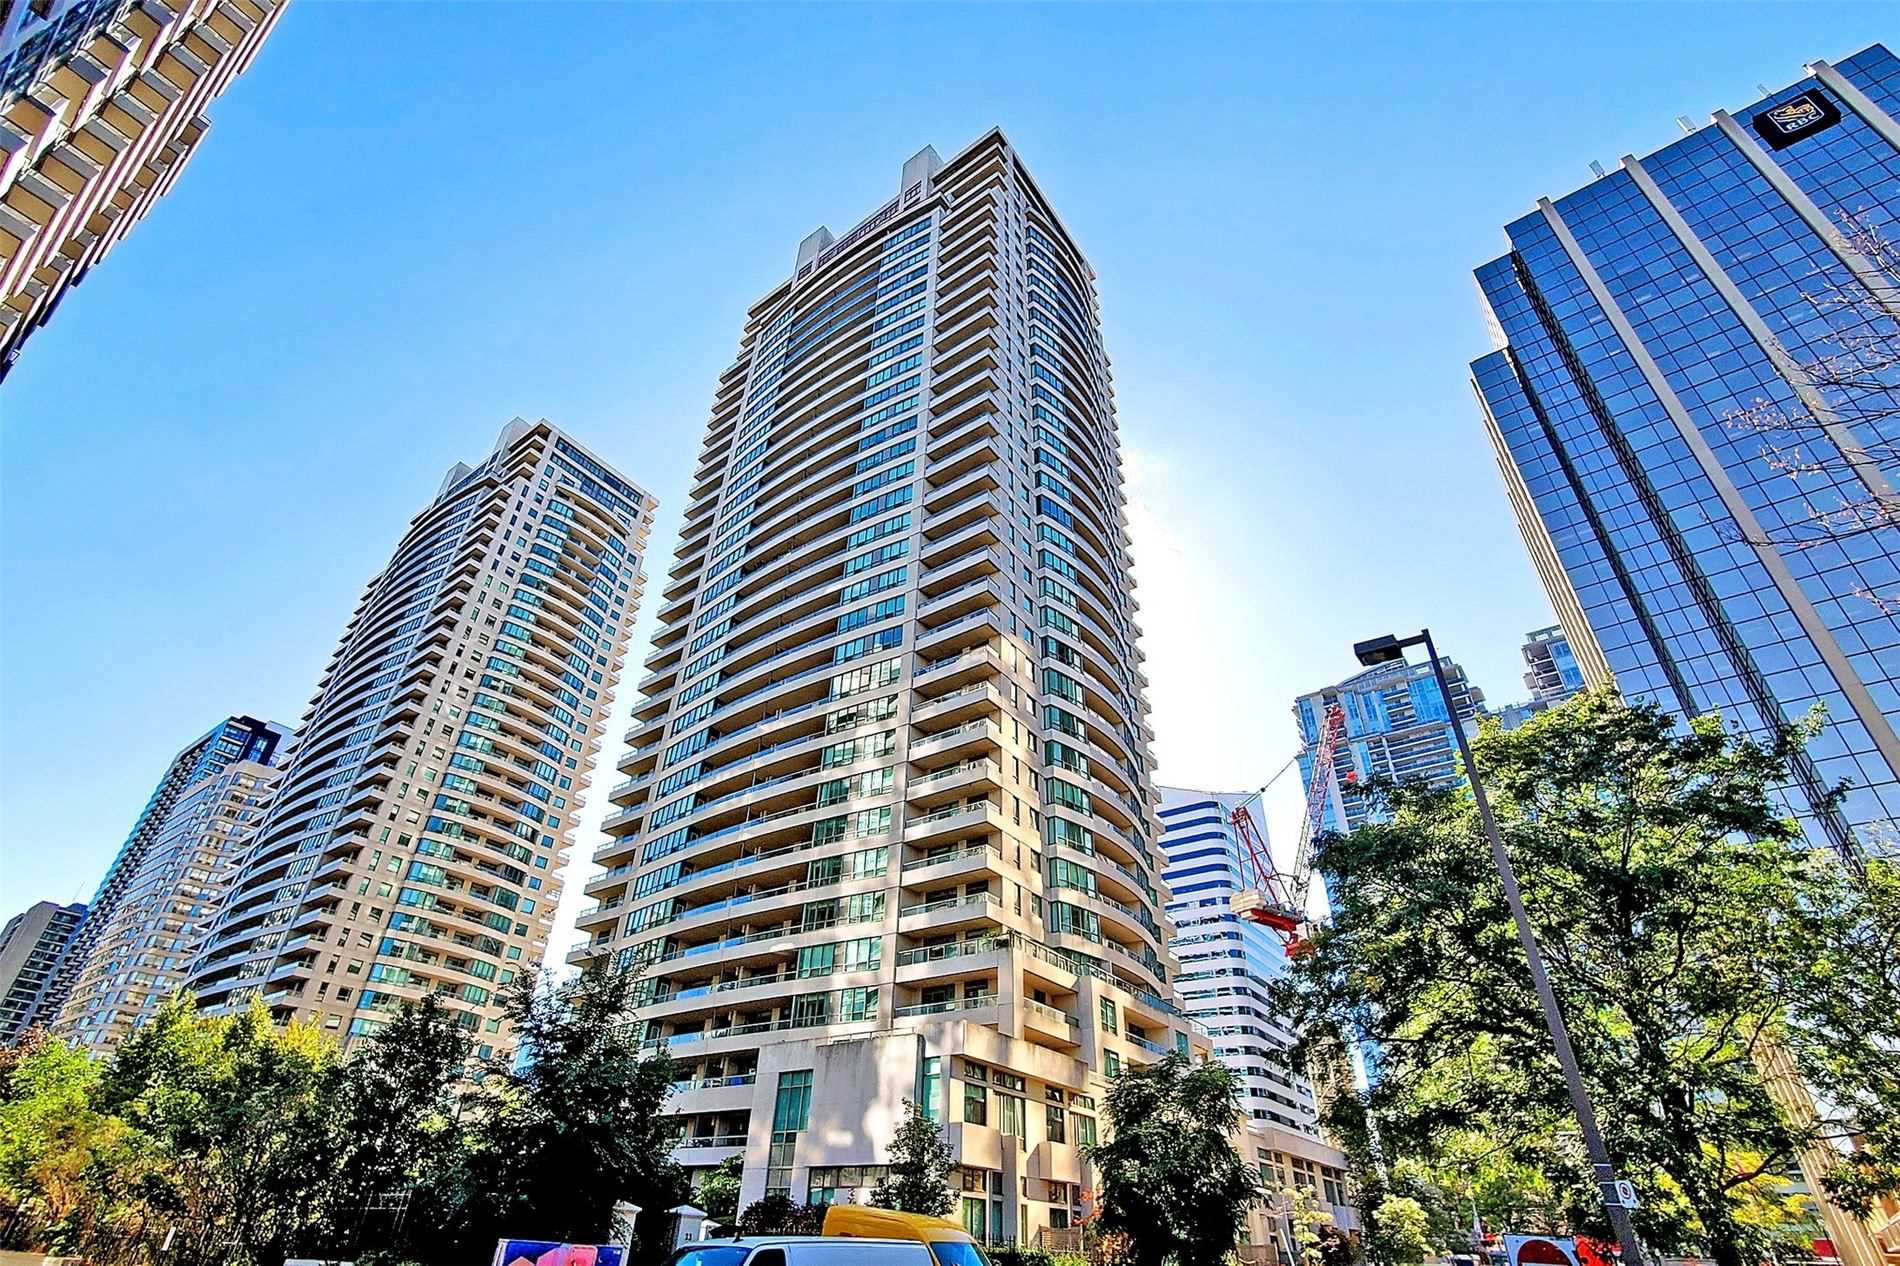 23 Hollywood Ave - C5392853 - $799,900